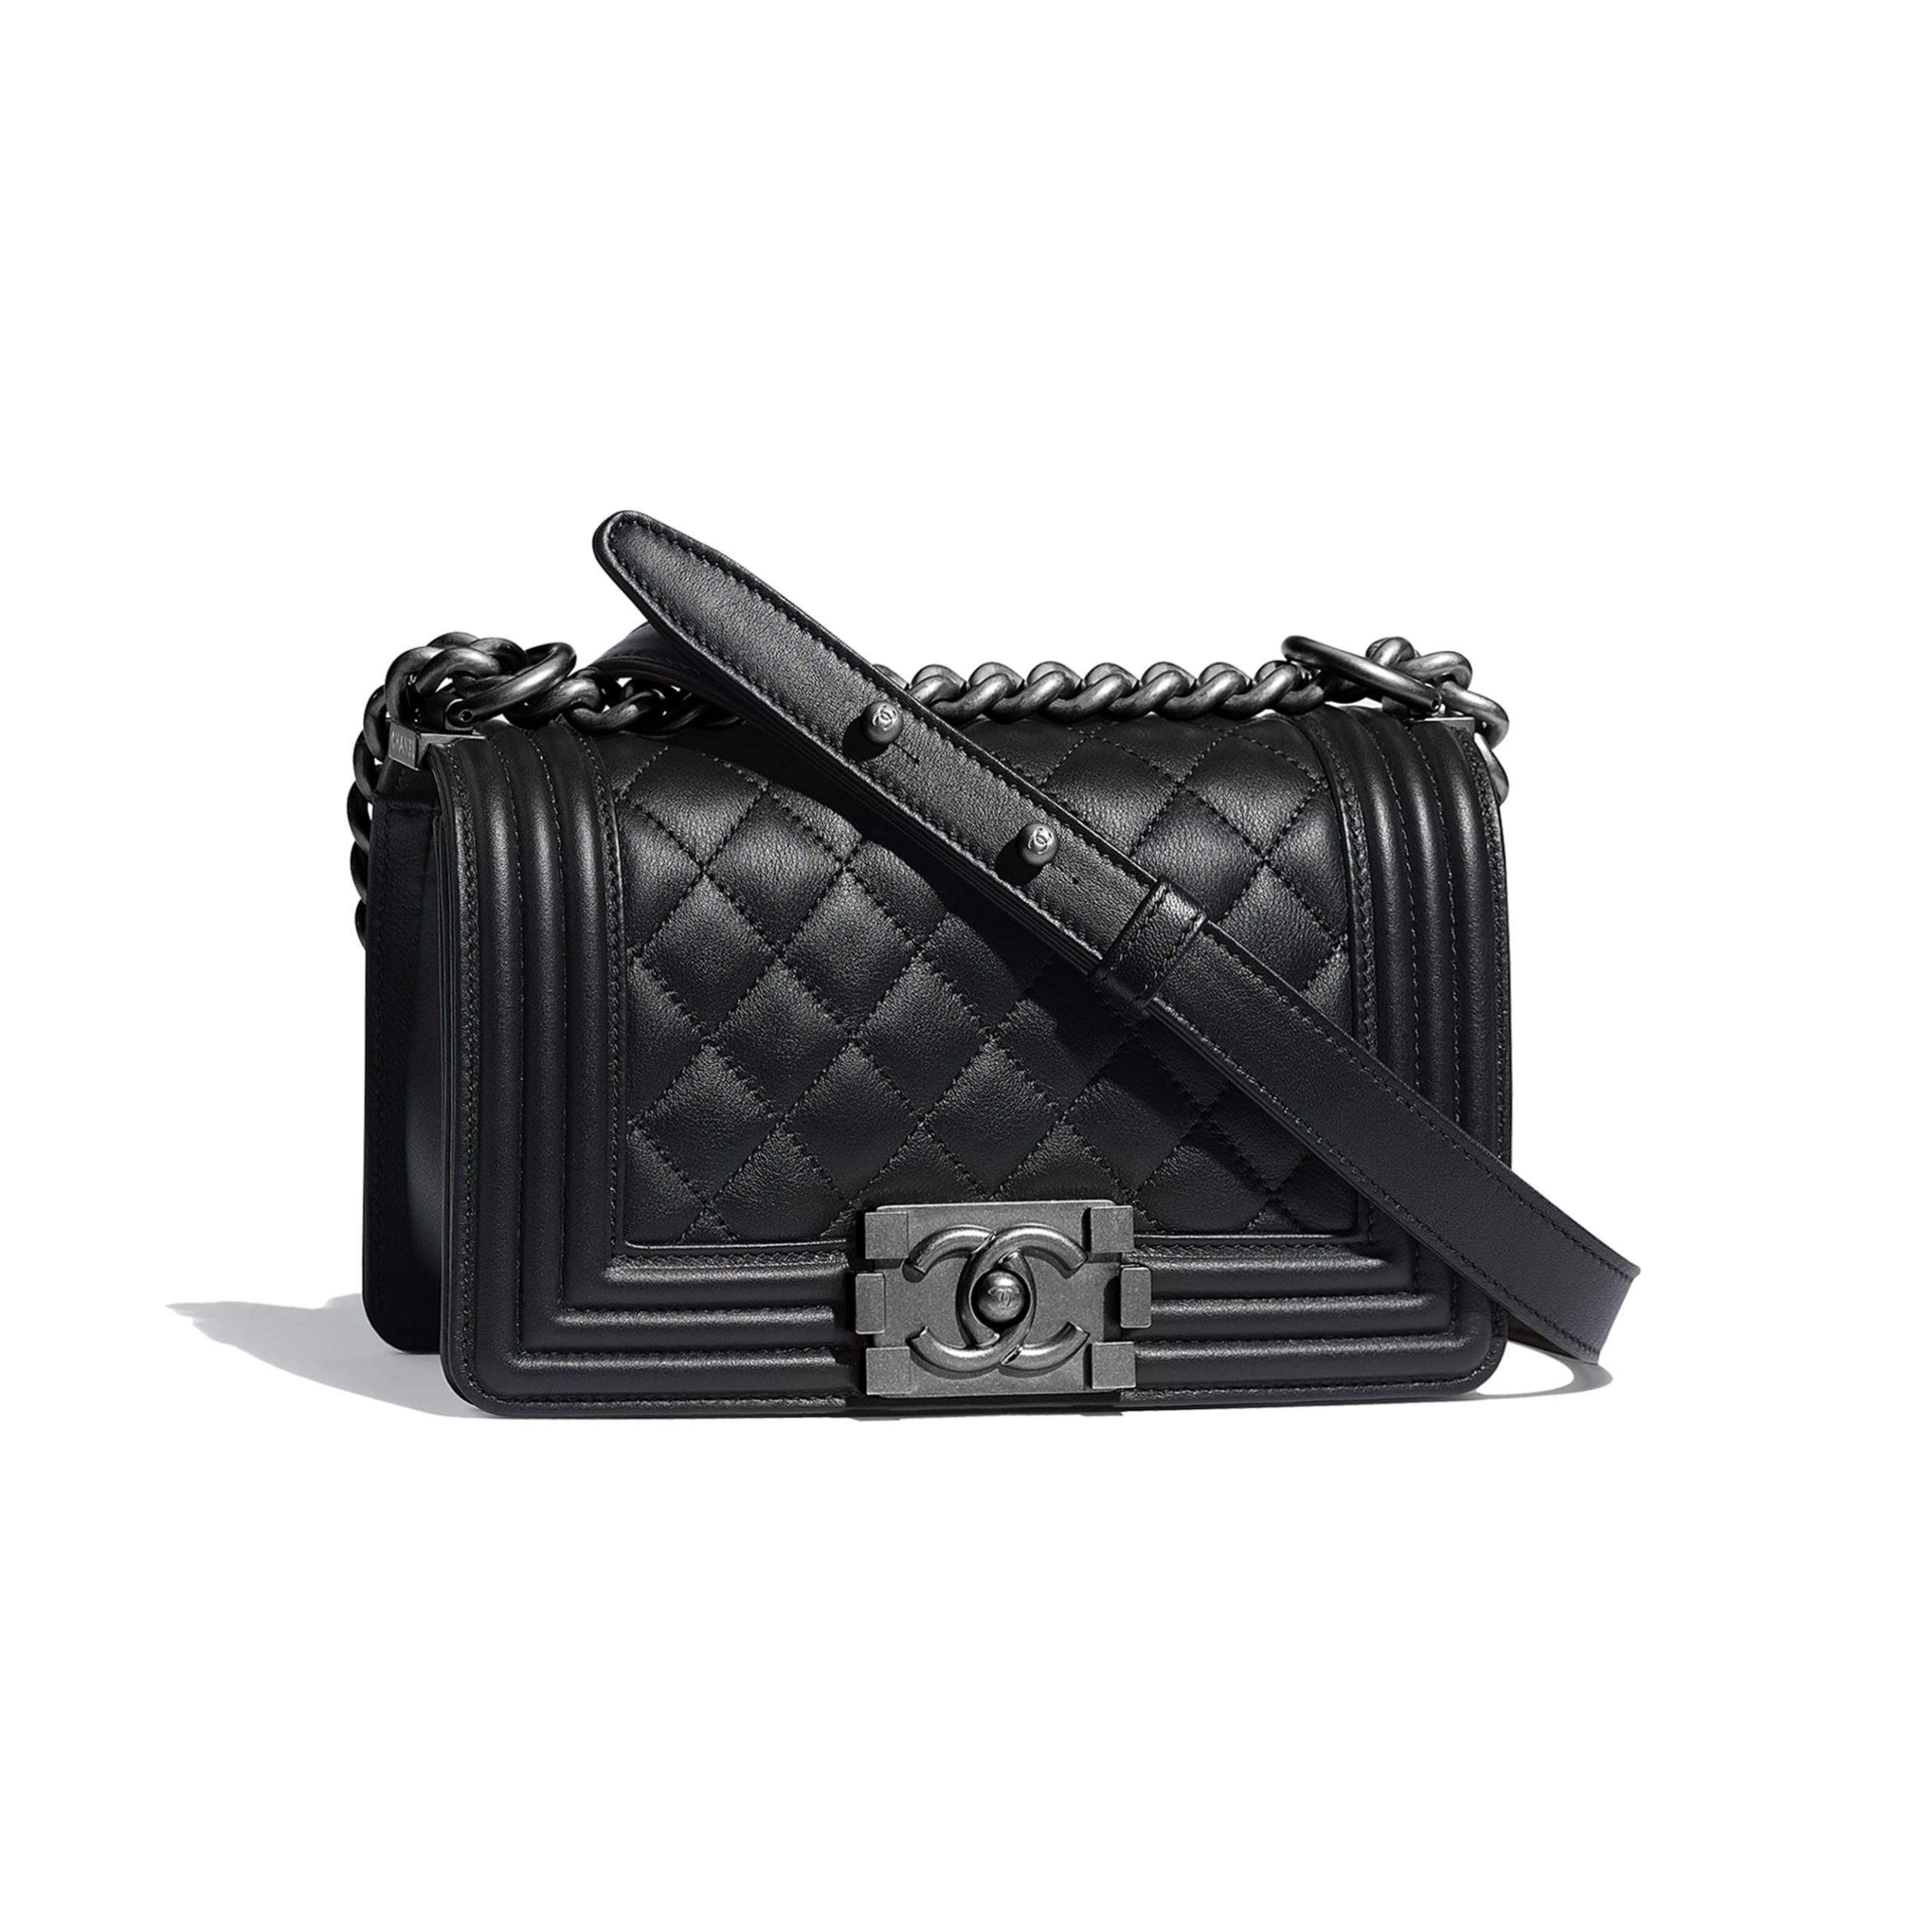 small-boy-chanel-handbag-black-calfskin-ruthenium-finish-metal-calfskin-ruthenium-finish-metal-packshot-default-a67085y0995394305-8824184176670.jpg